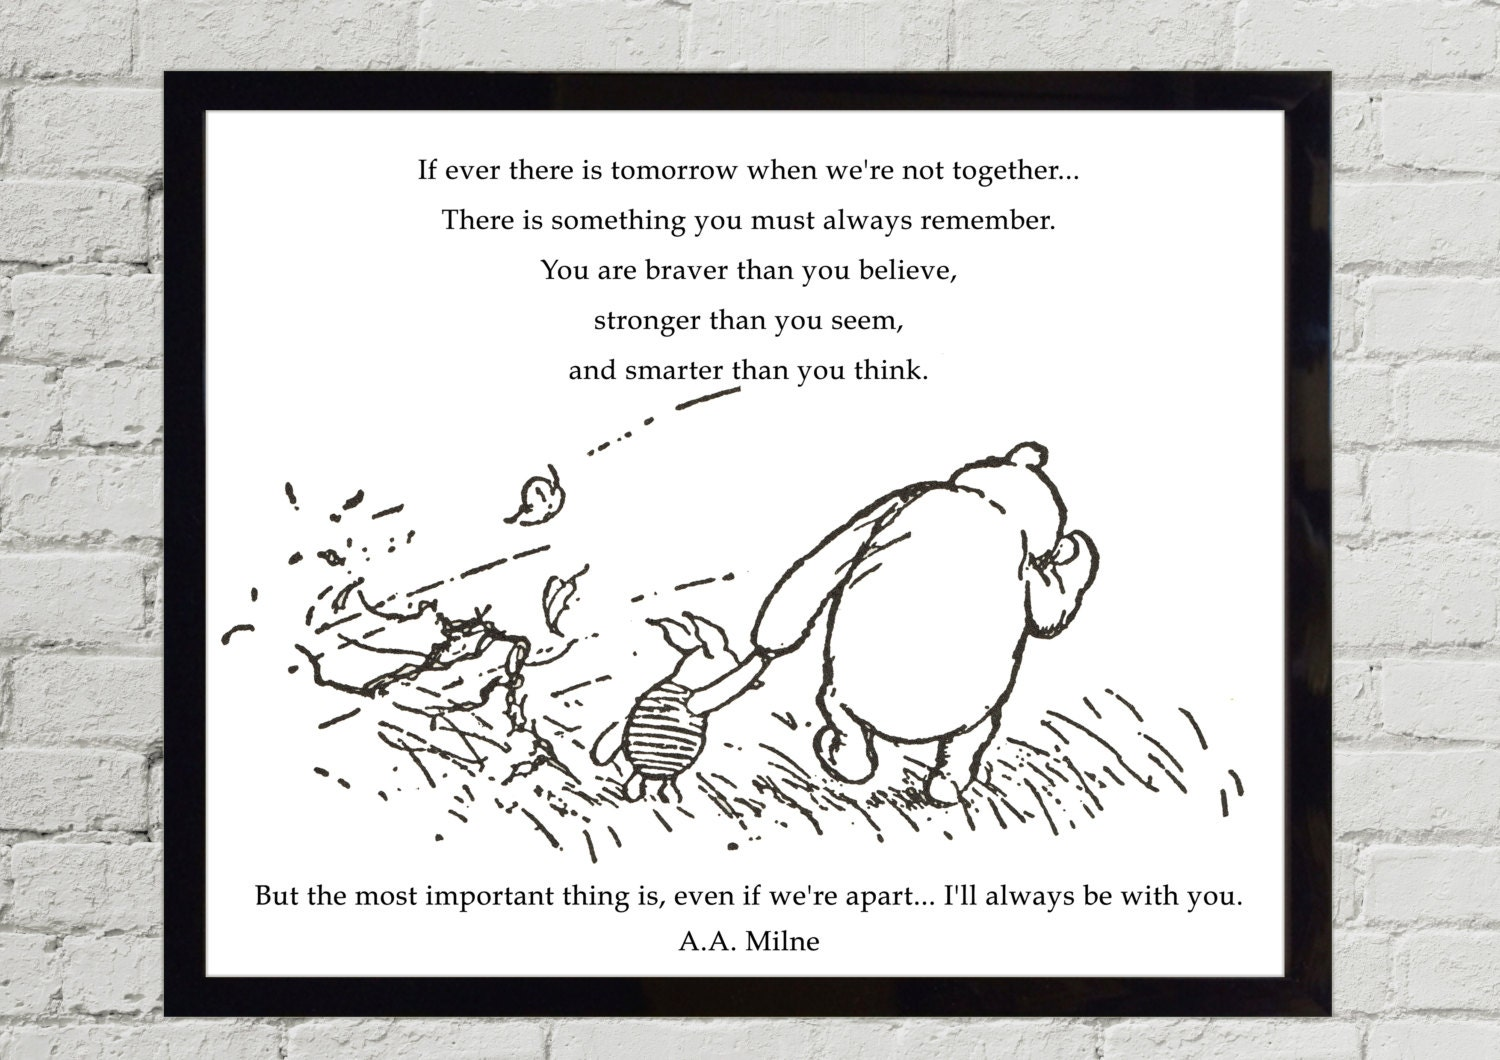 Pooh Quotes About Friendship Winnie The Pooh Quotes If Ever There Is Tomorrow When